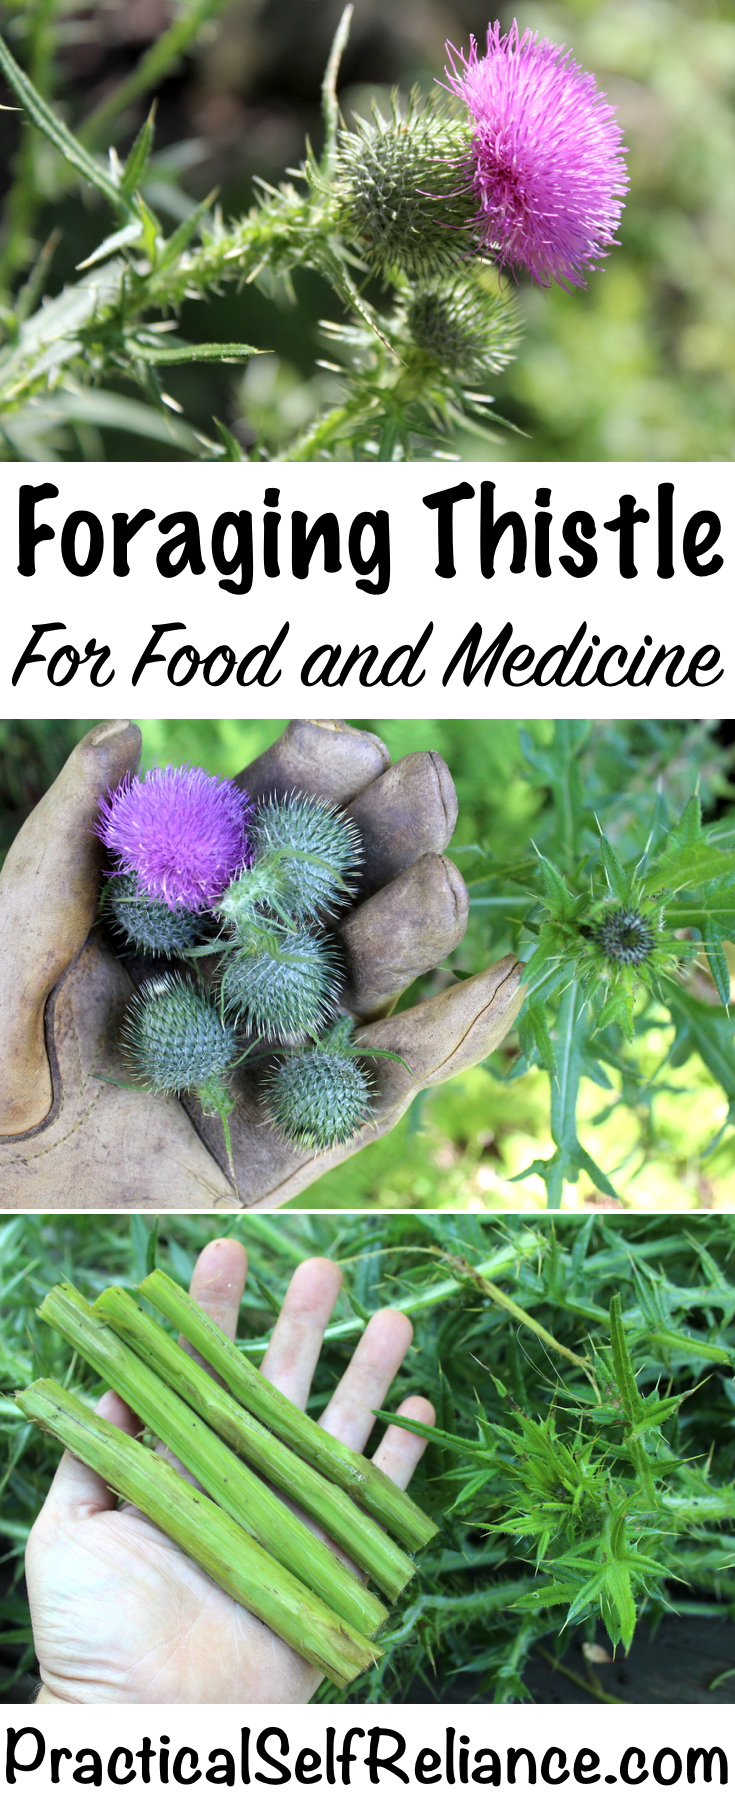 Foraging Thistle for Food and Medicine